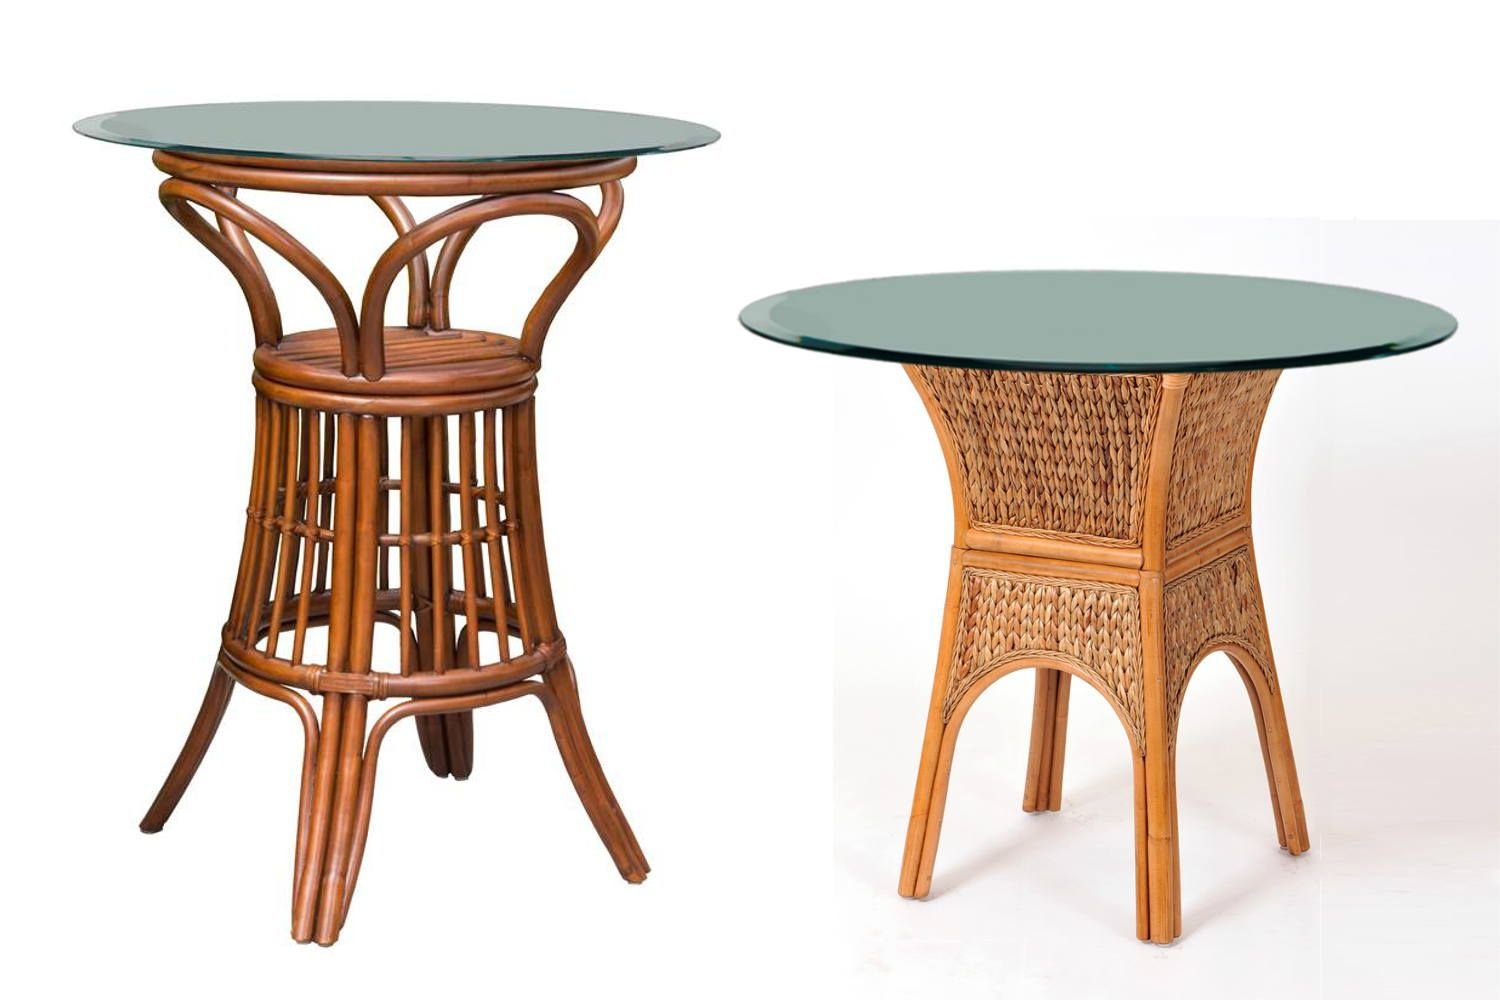 Our Alexander & Sheridan #table collection brings the versatility of glass sizes and finishes that will blend perfectly in any room. It includes #pub #tables, #counter #tables, and #dining #tables.